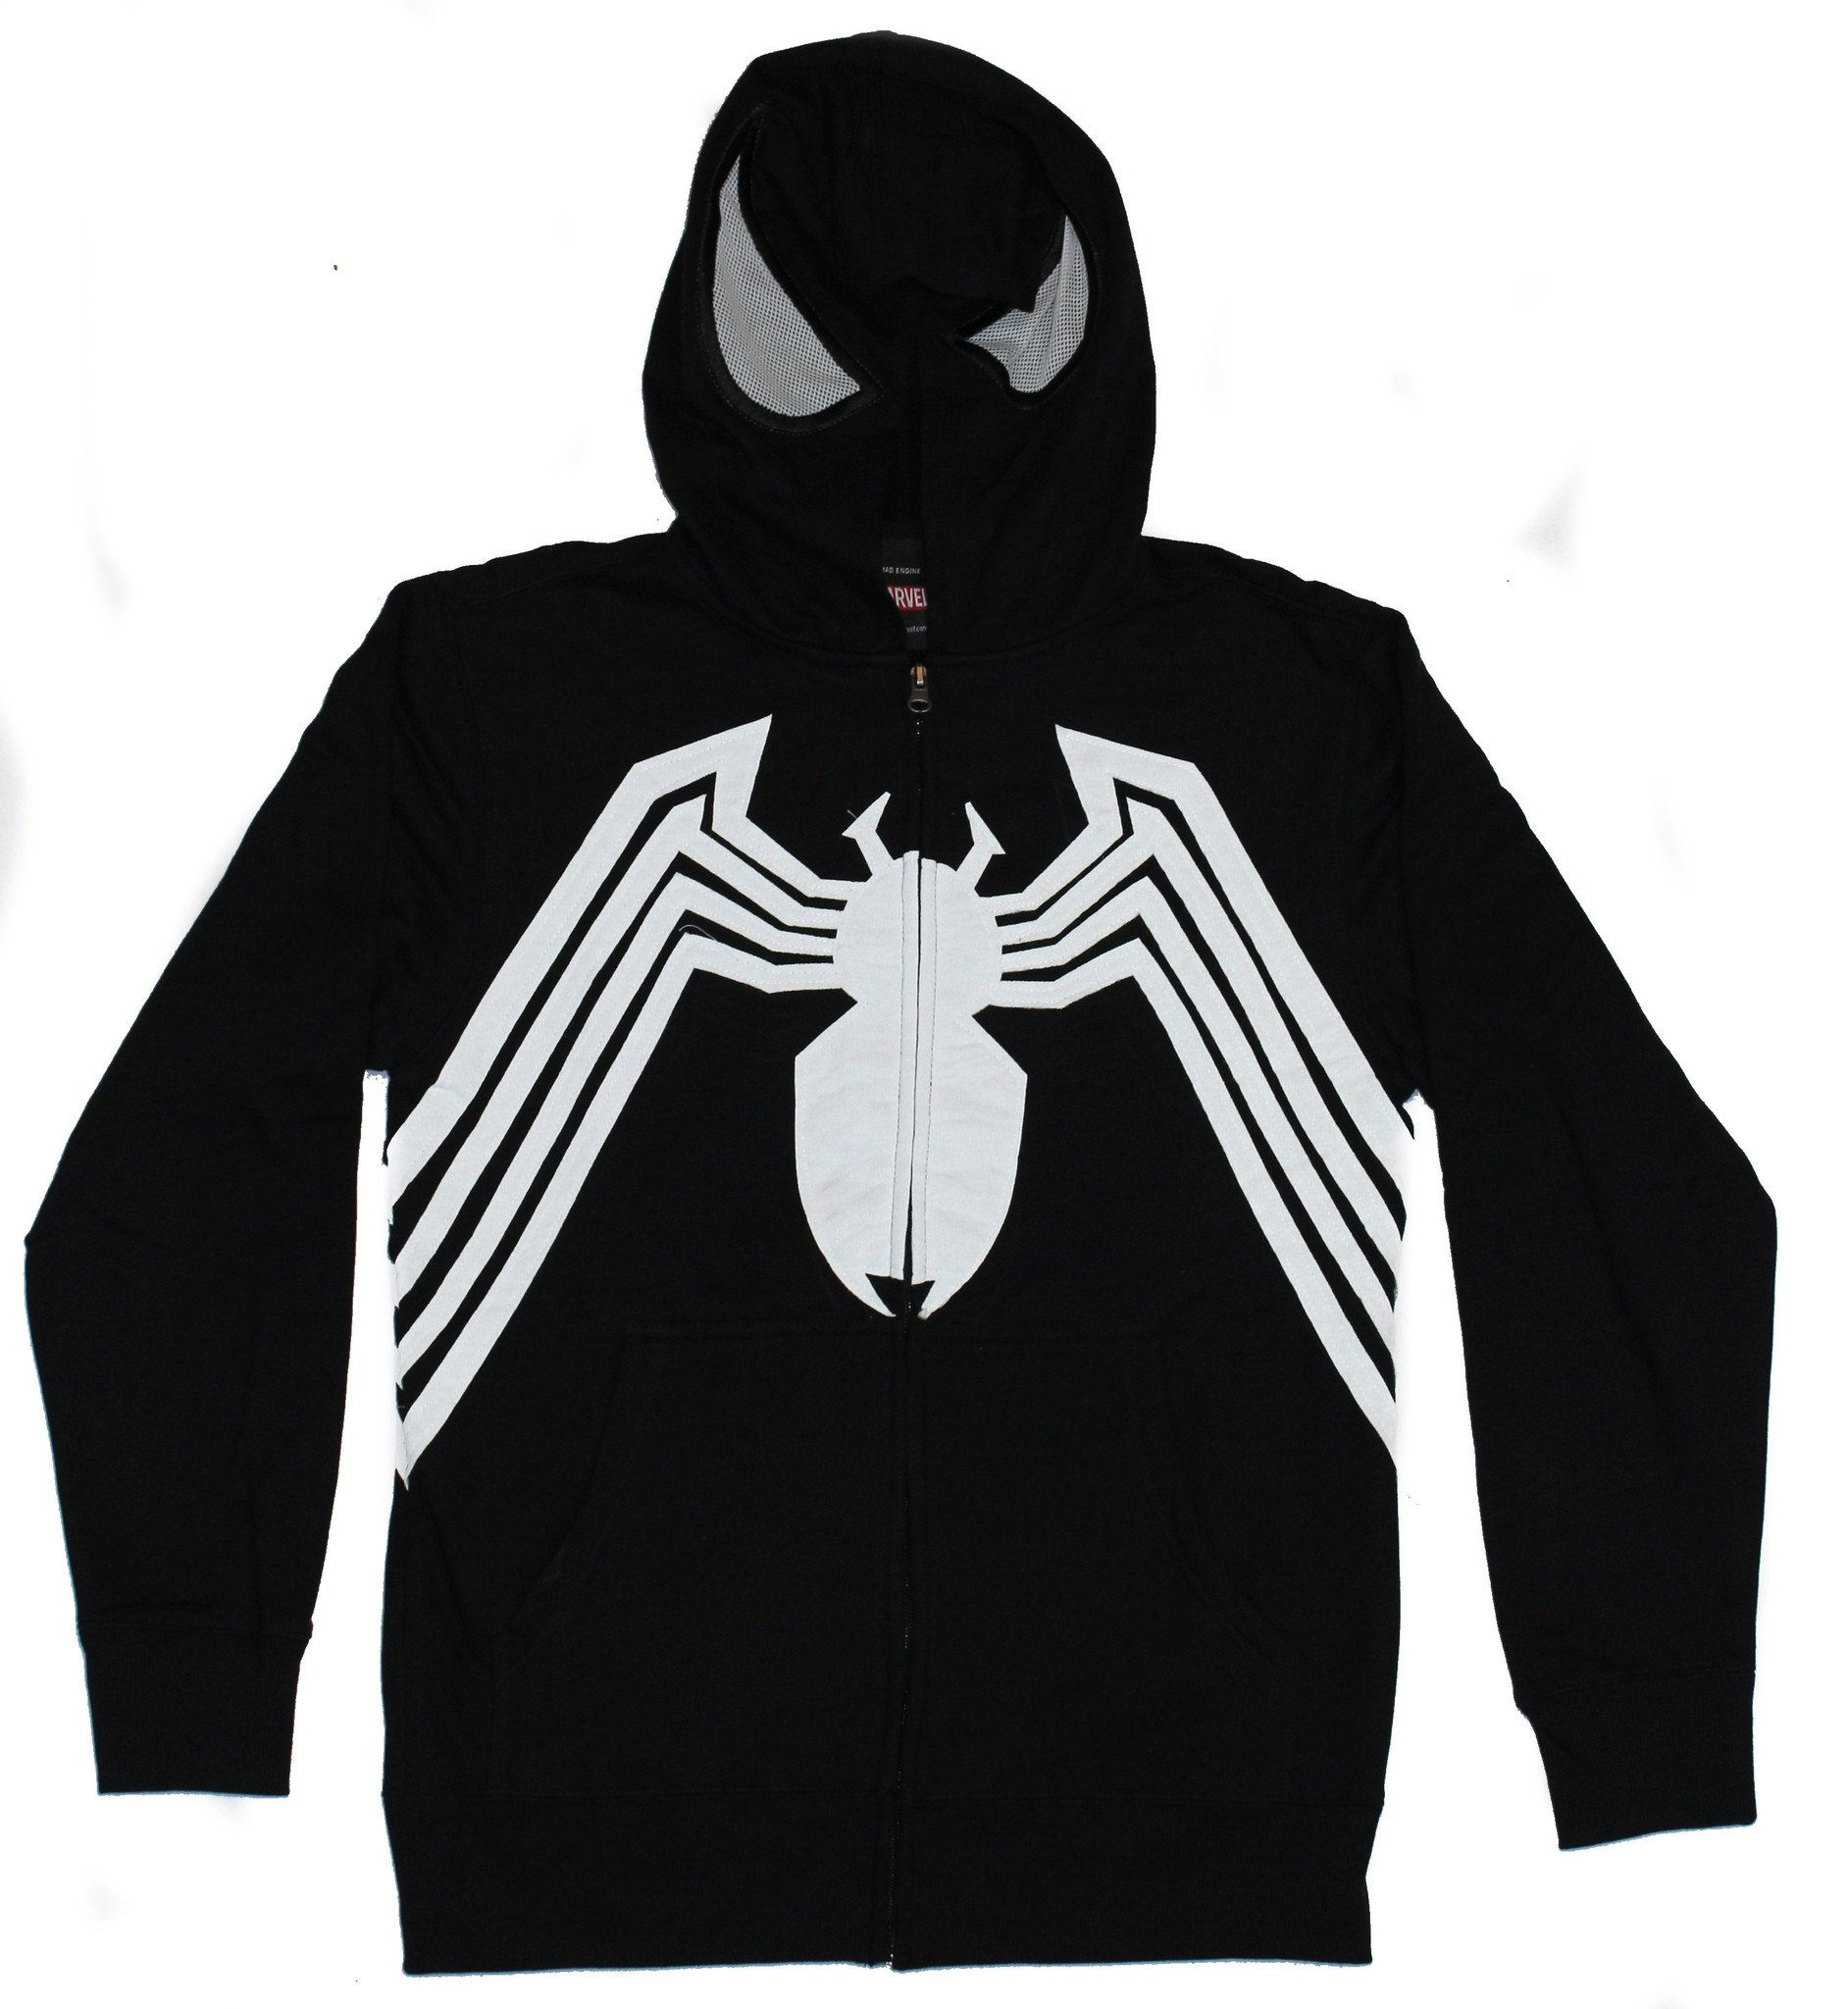 Details Costume Zip Up About Venommarvel ComicsMens Hoodie Front Open Hood Image H29IYDWE